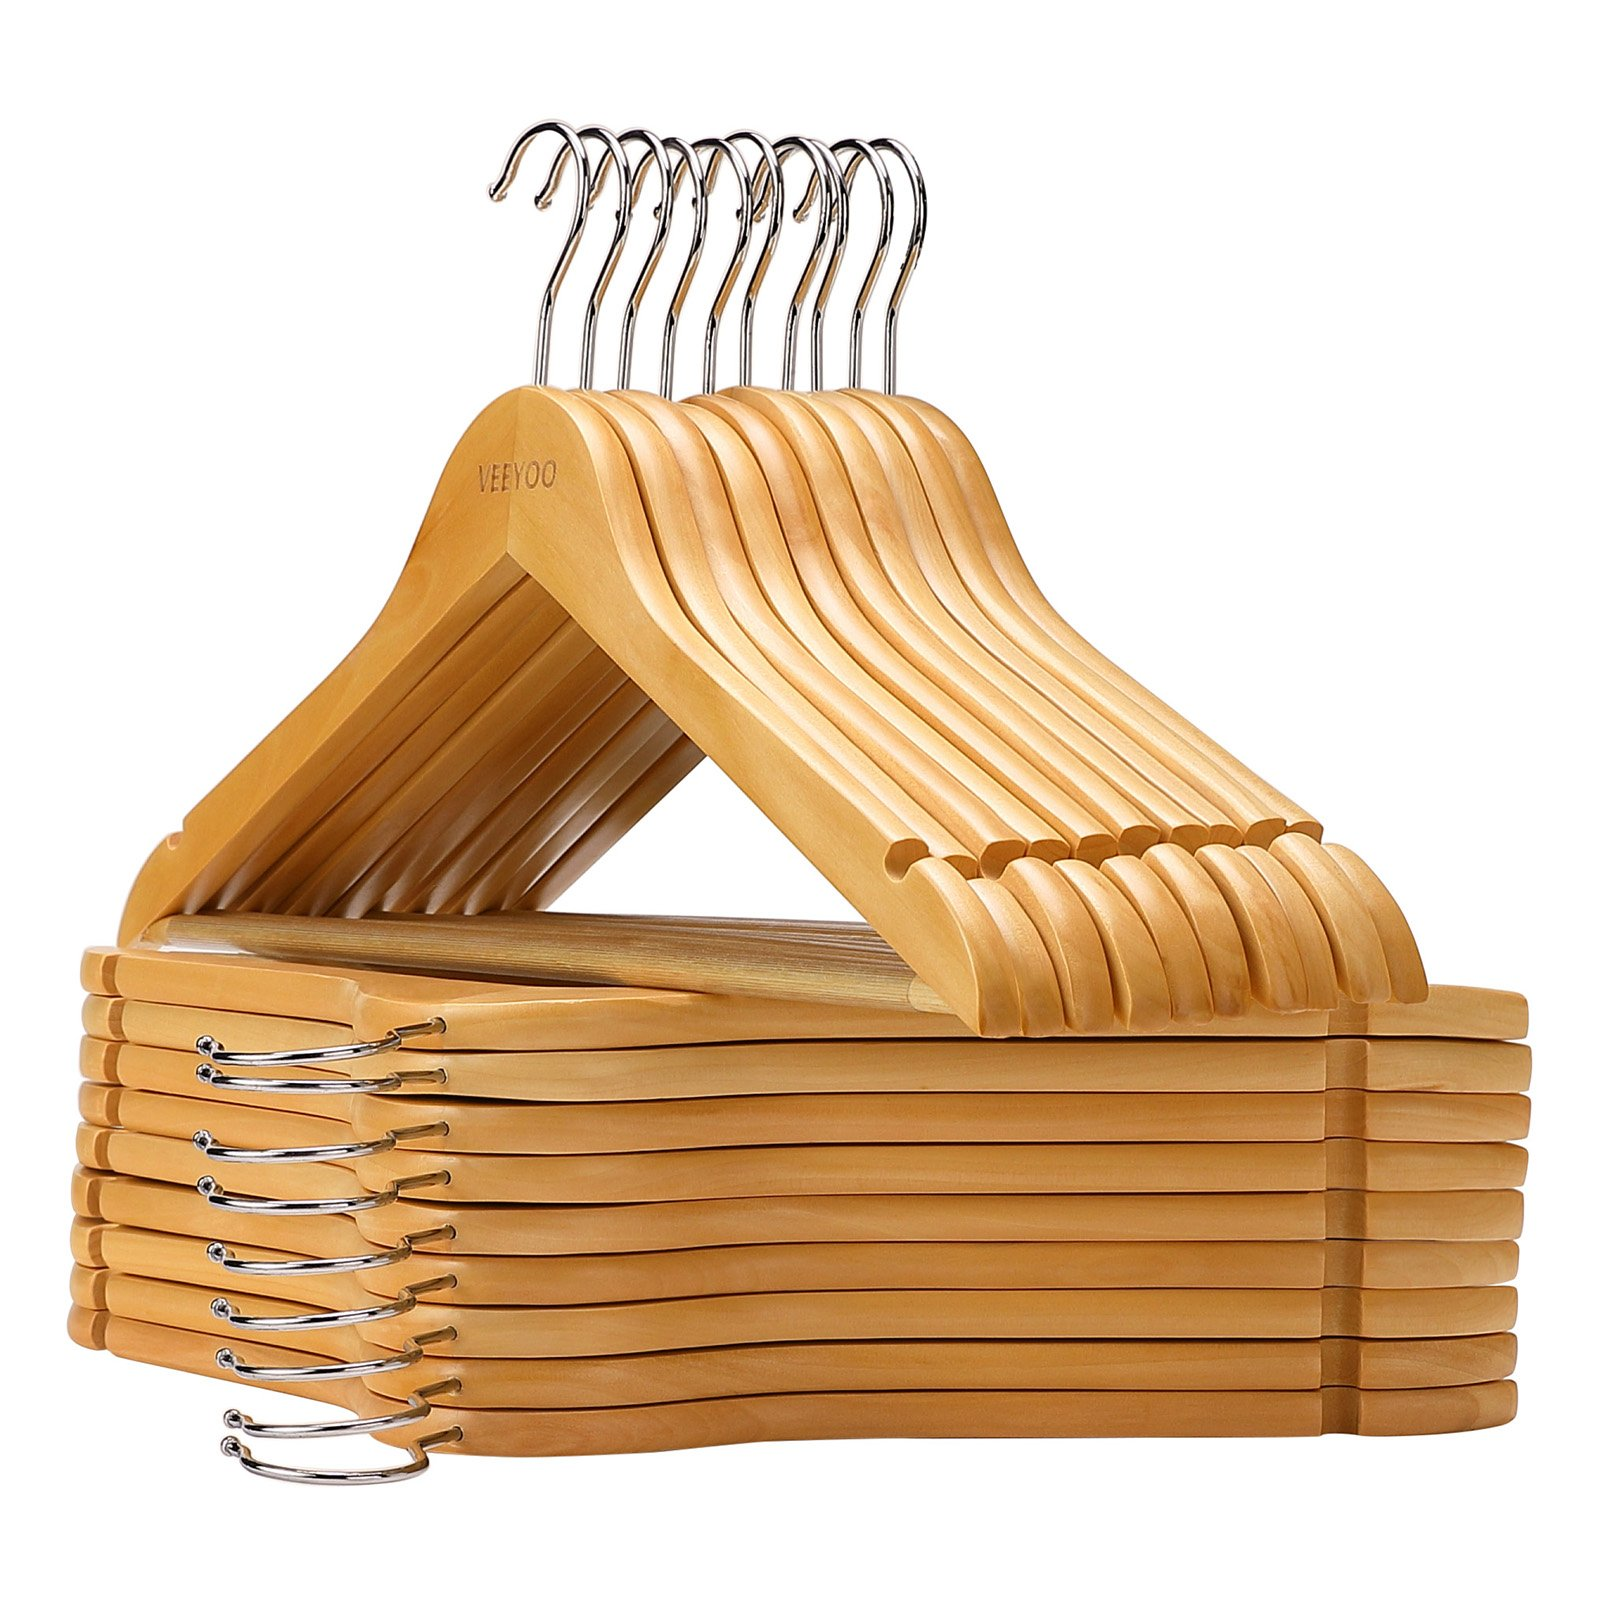 VEEYOO Solid Wooden Suit Hangers (Set of 20) - Non-Slip Bar & Extra Thick Chrome Hook - Sturdy and Durable Coat Jacket Dress Clothes Hangers, Natural Finish